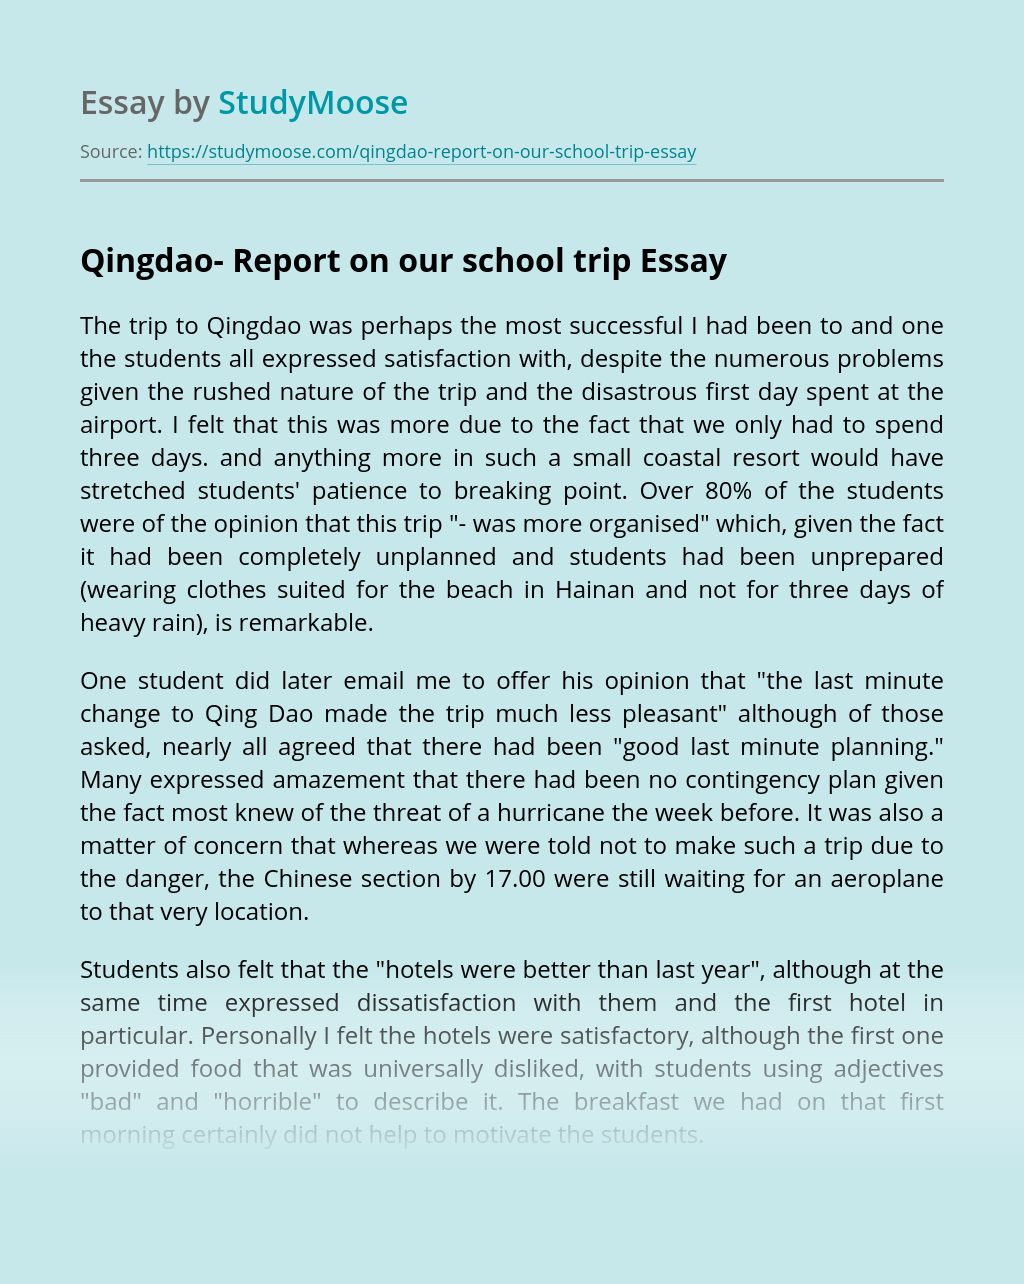 Qingdao- Report on our school trip